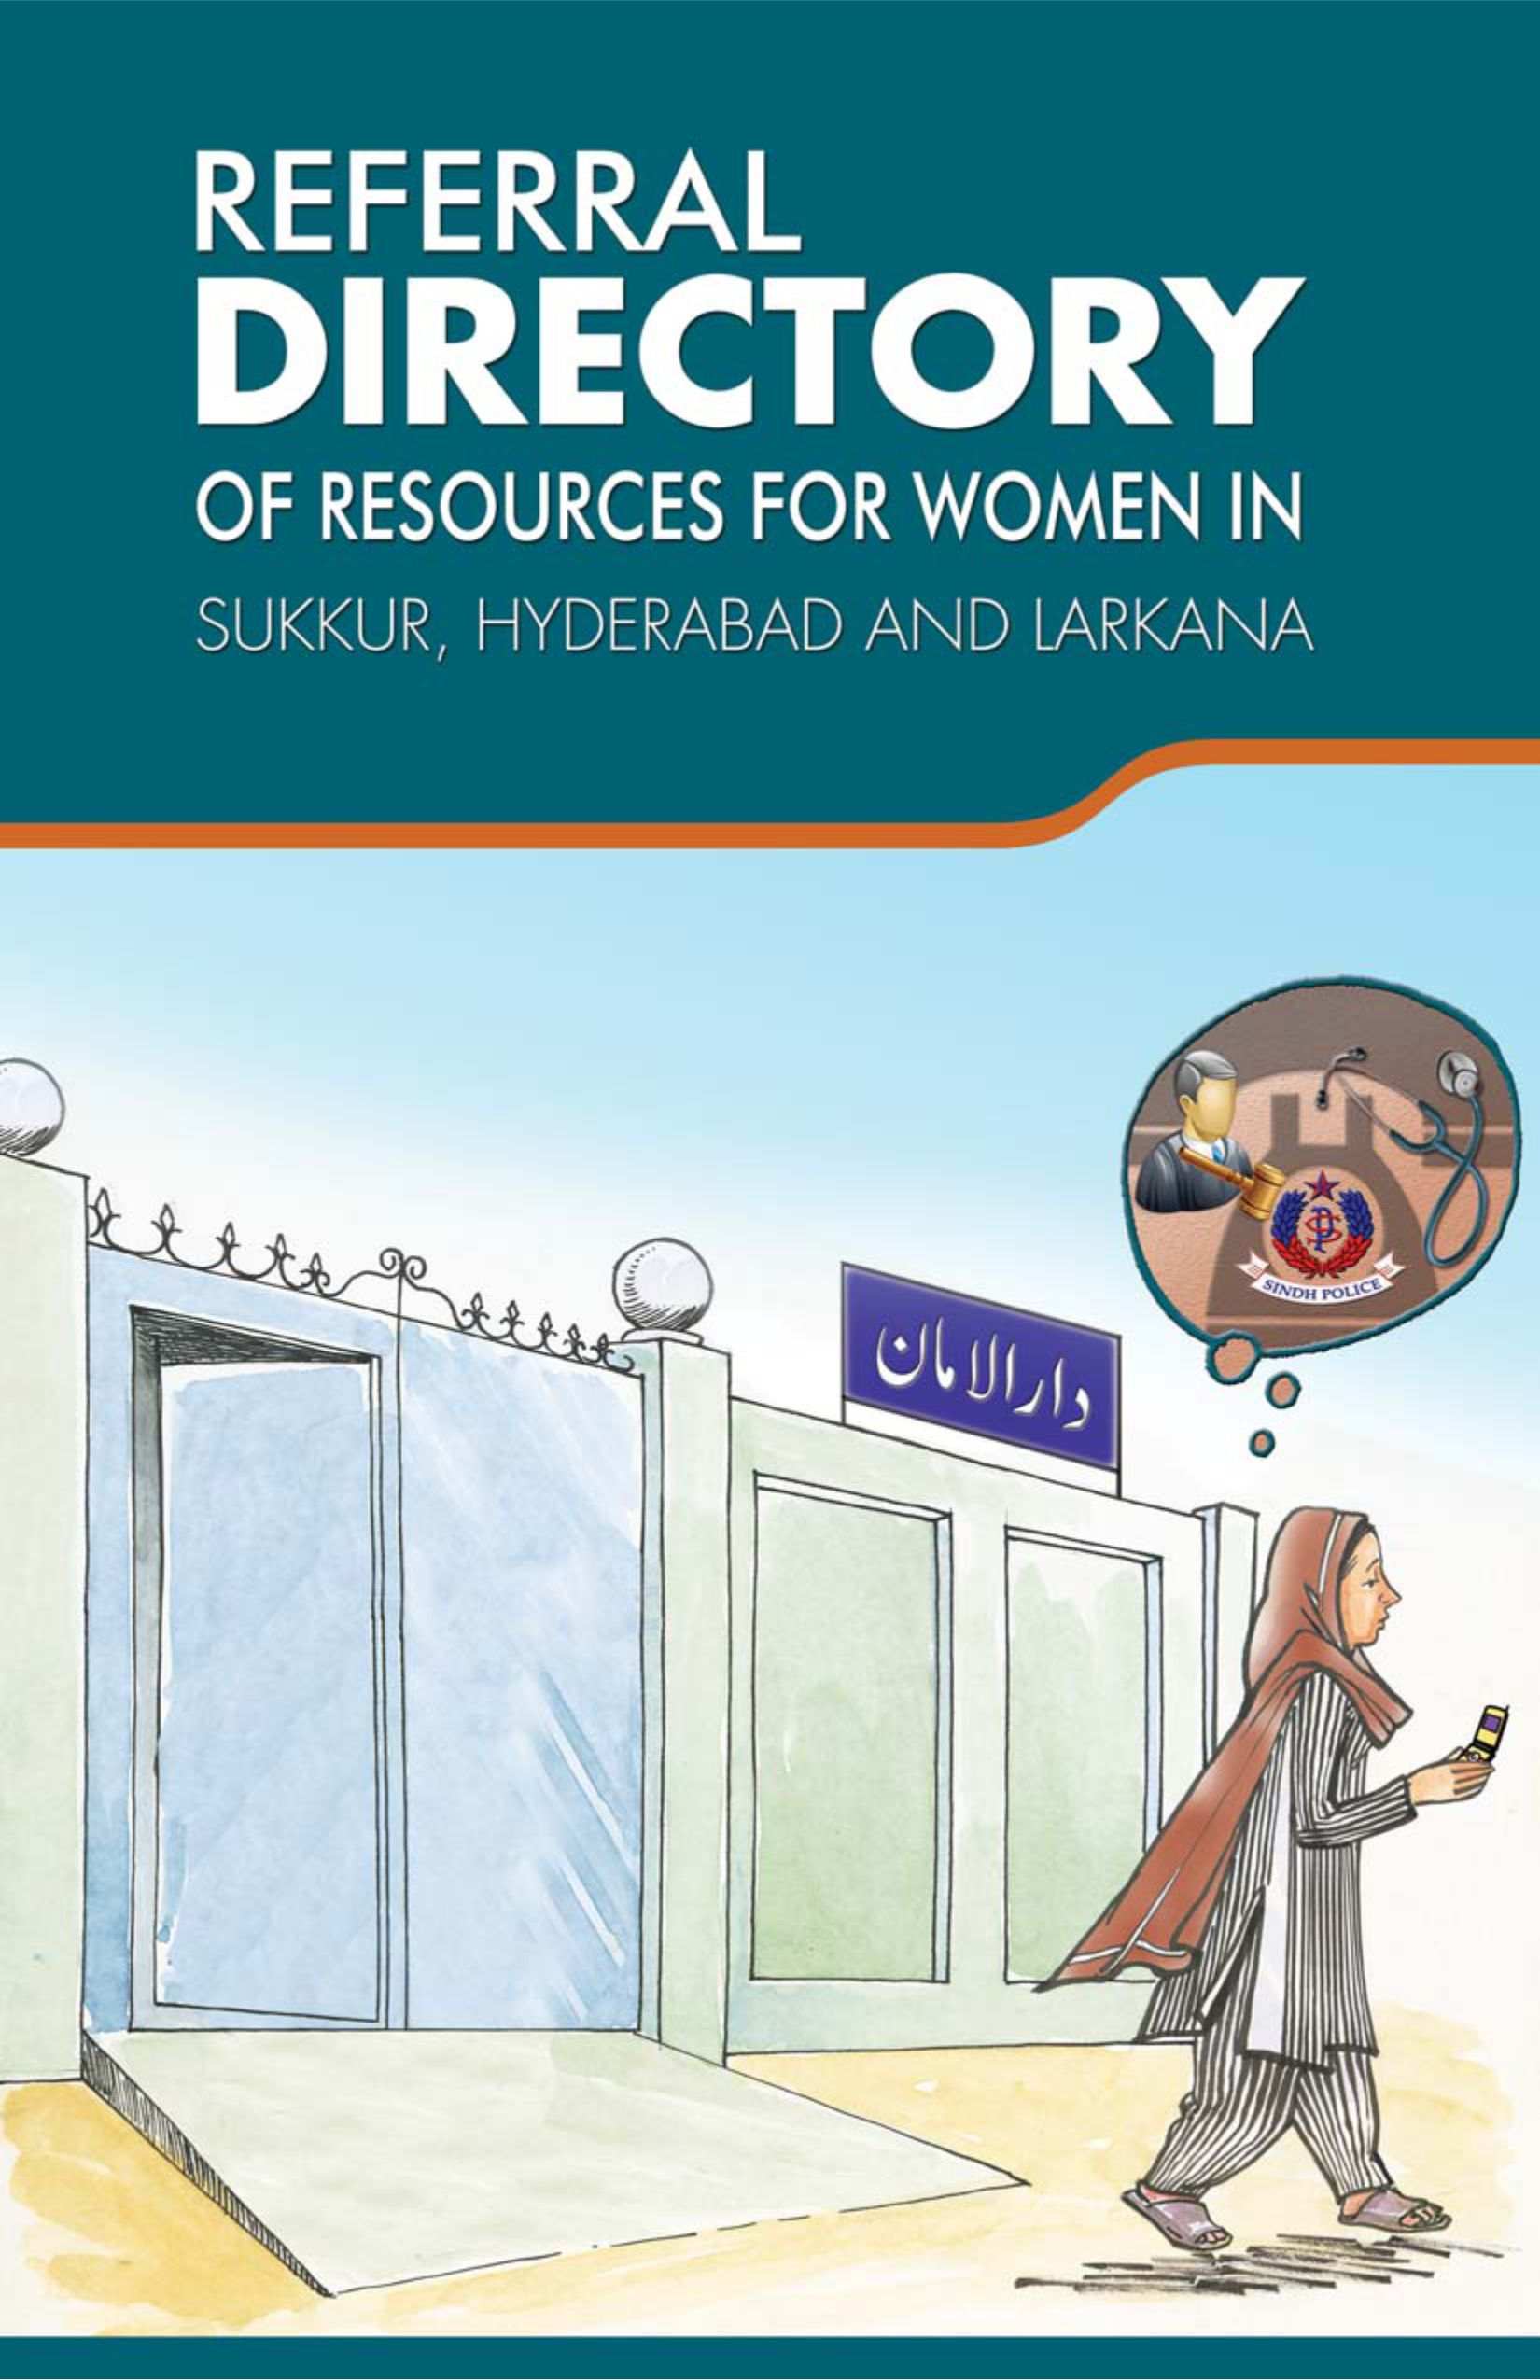 Referral Directory of Resources for Women